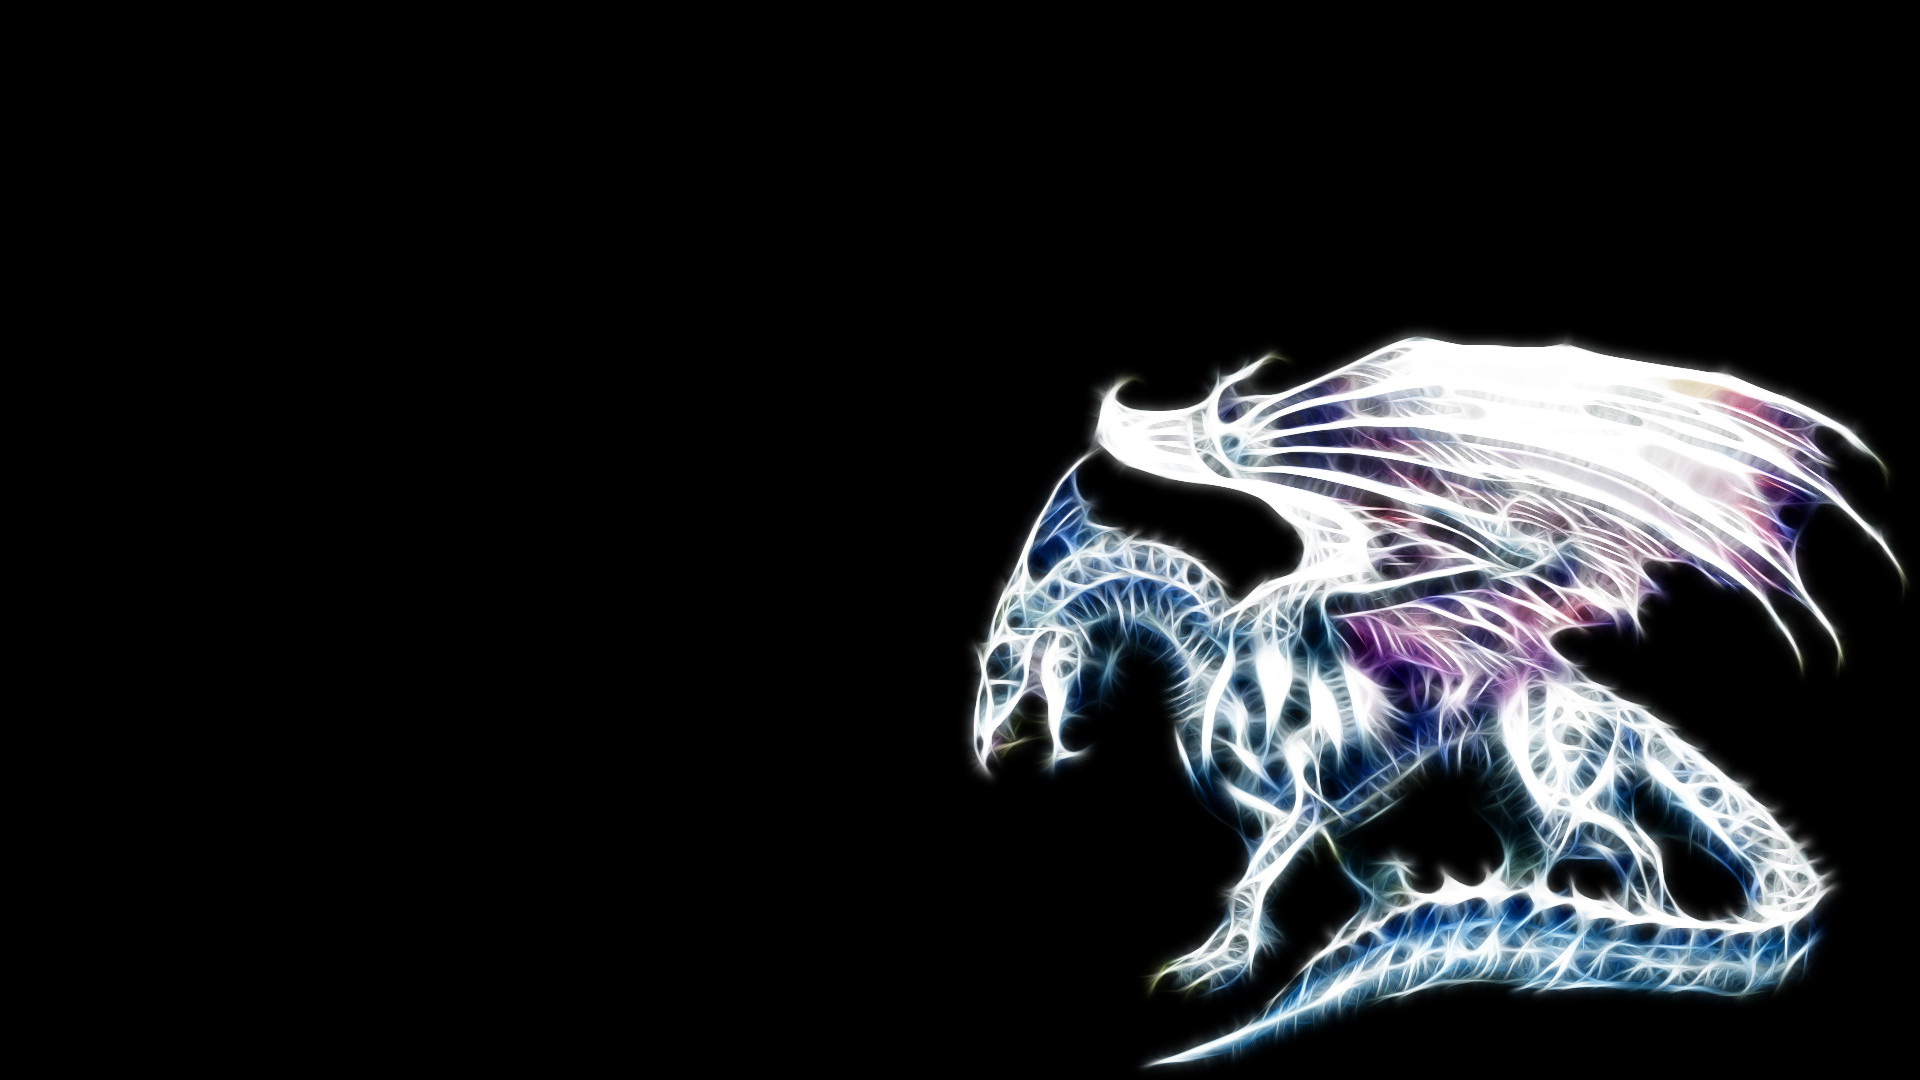 Cool dragon backgrounds wallpapertag - Cool dragon wallpapers ...